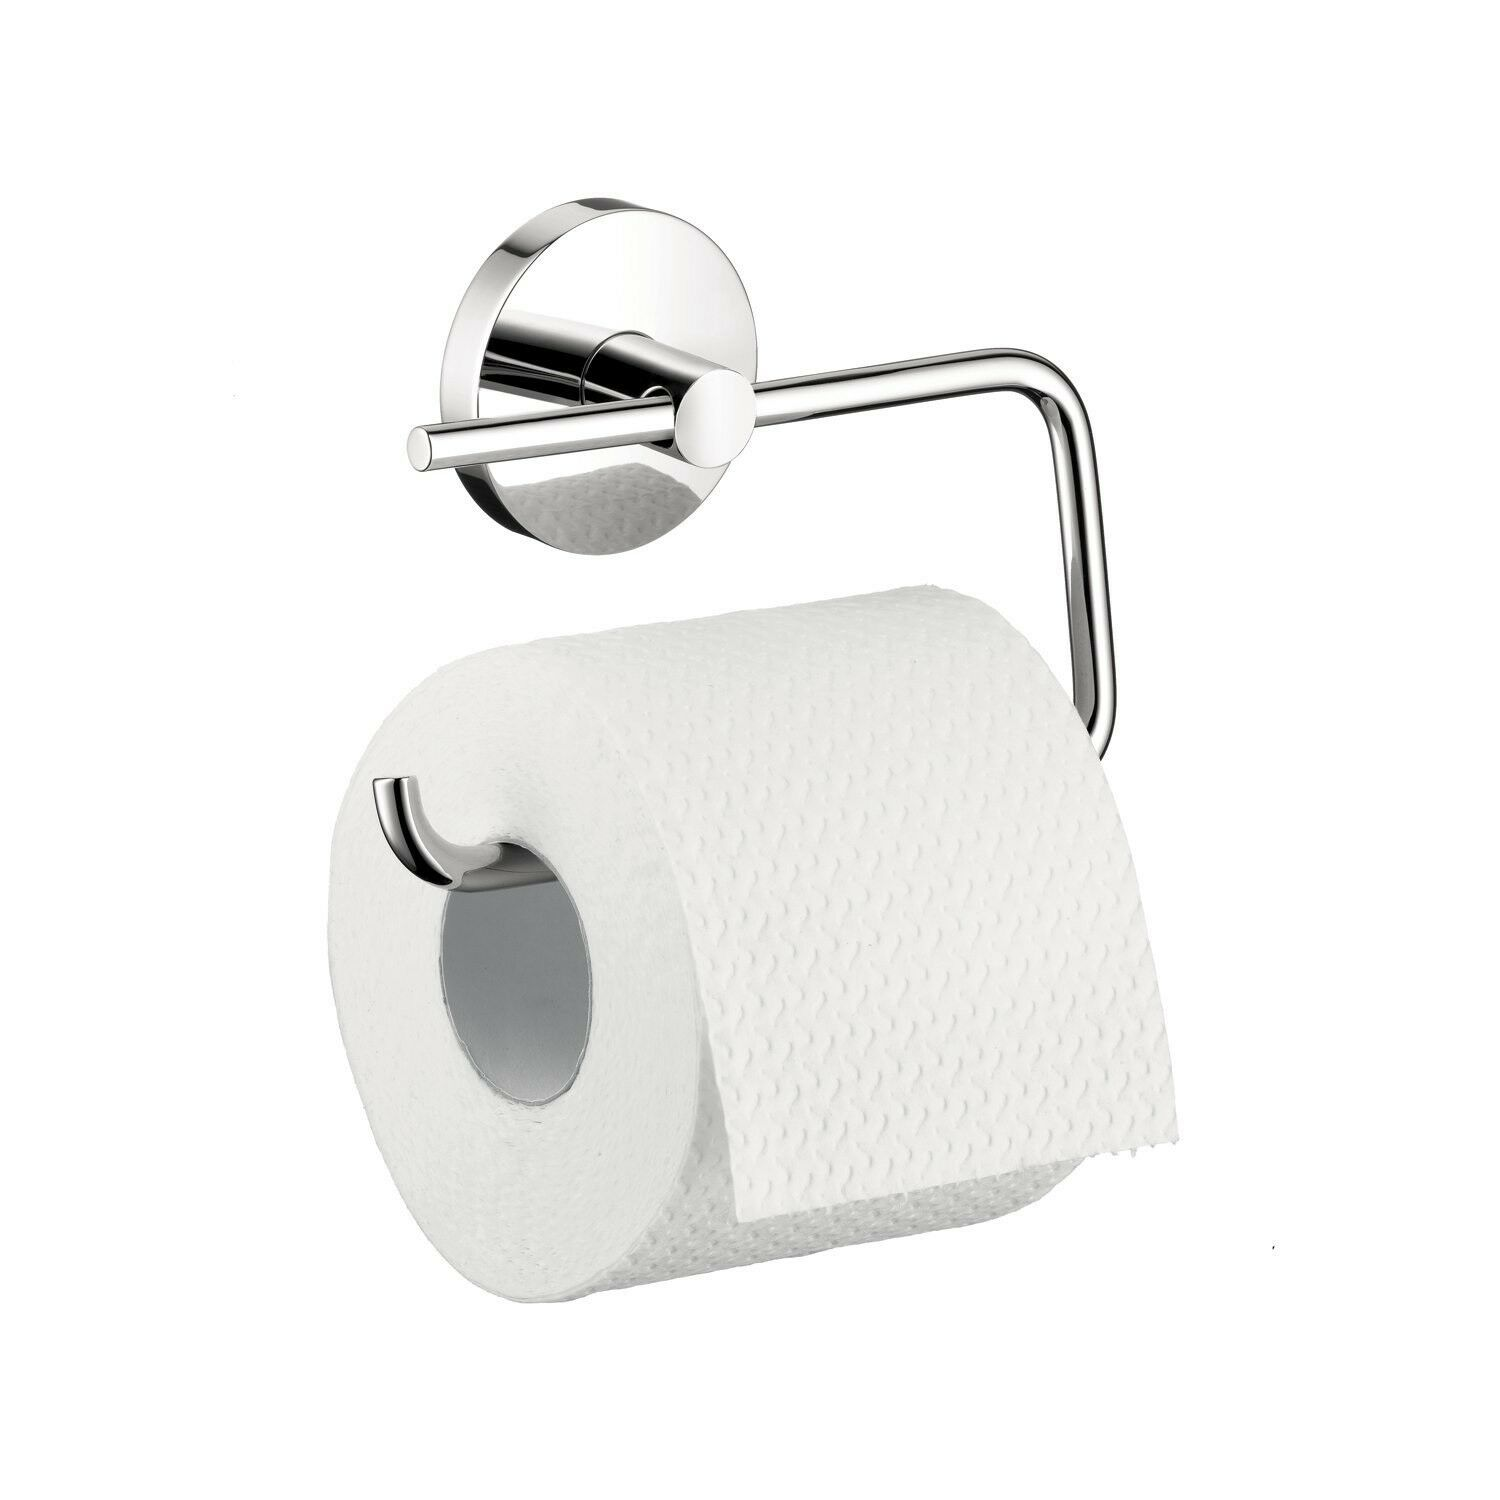 Hansgrohe Logis Open Toilet Paper Roll Holder Chrome